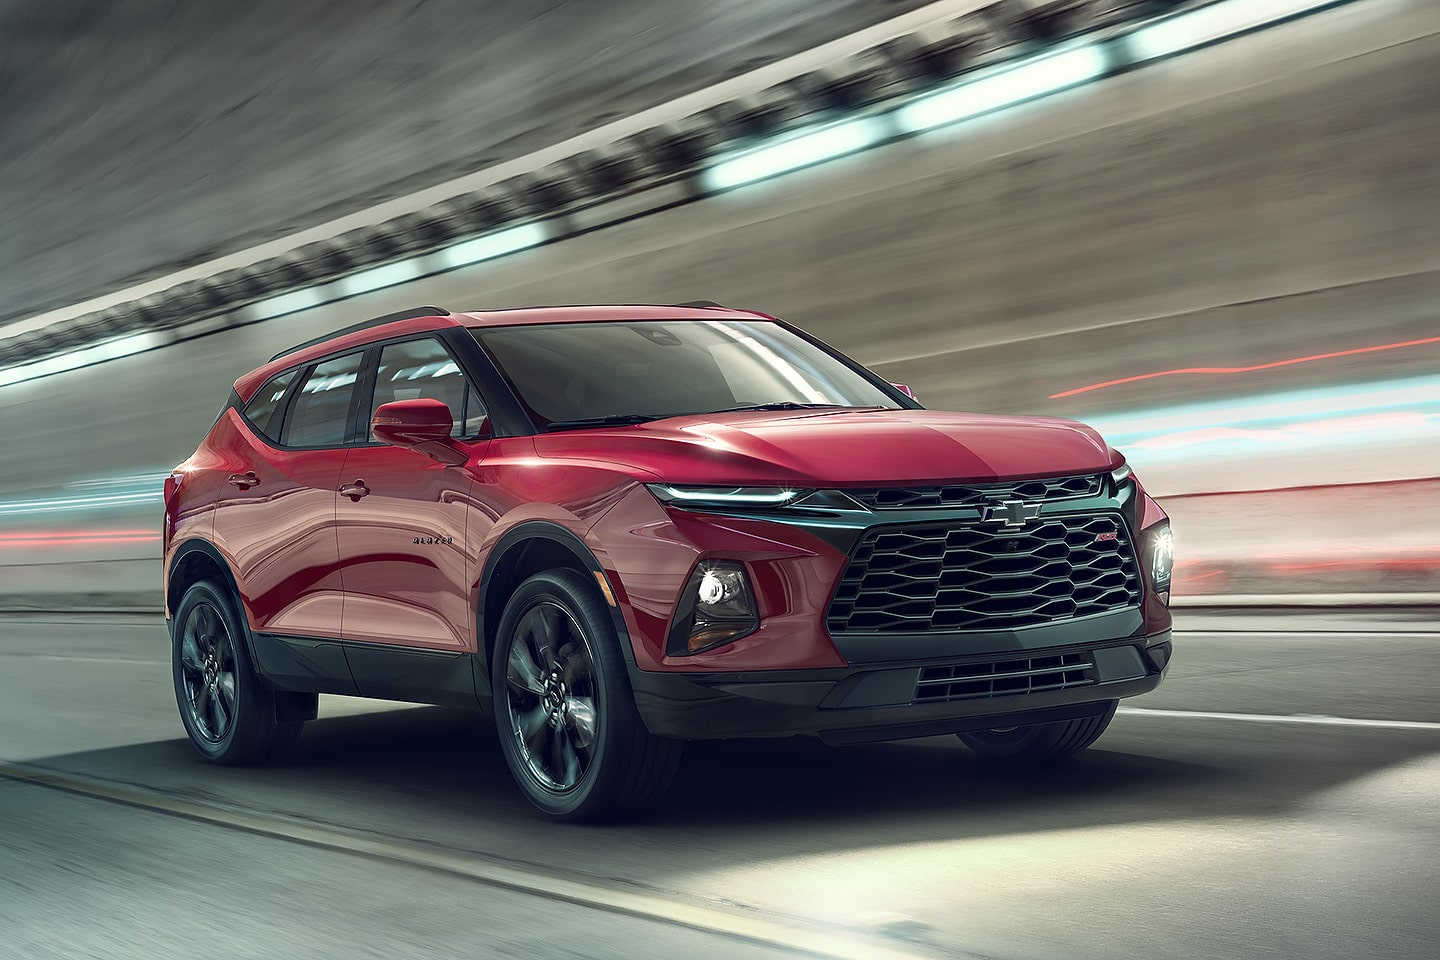 2019 Chevrolet Blazer Canadian Price Announced - Motor ...